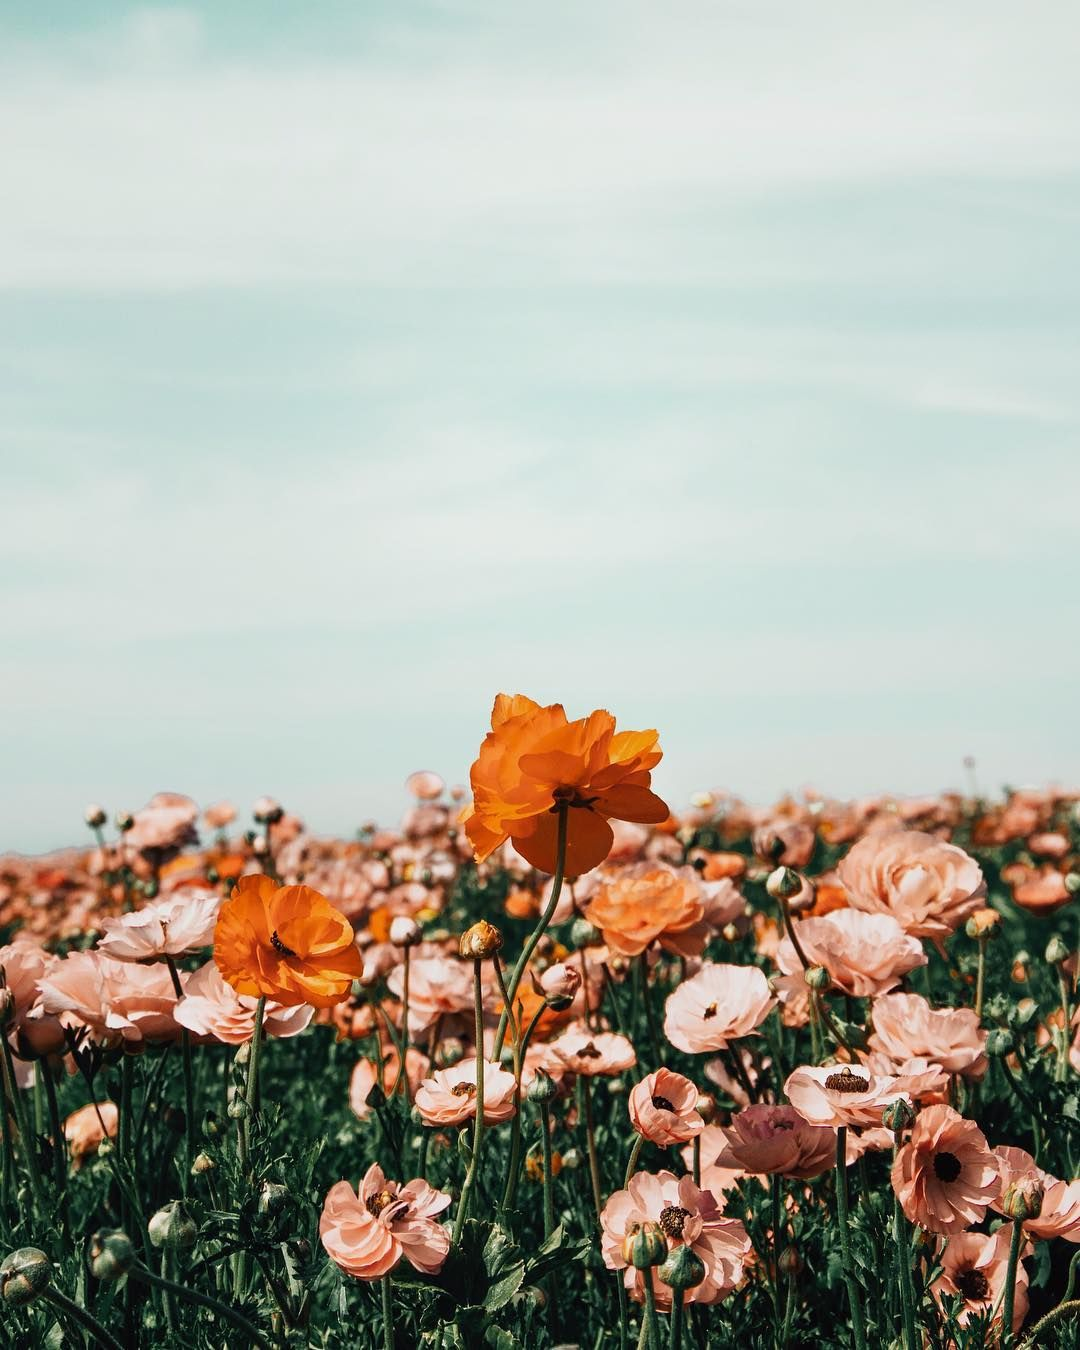 Flower Aesthetic Wallpaper Desktop